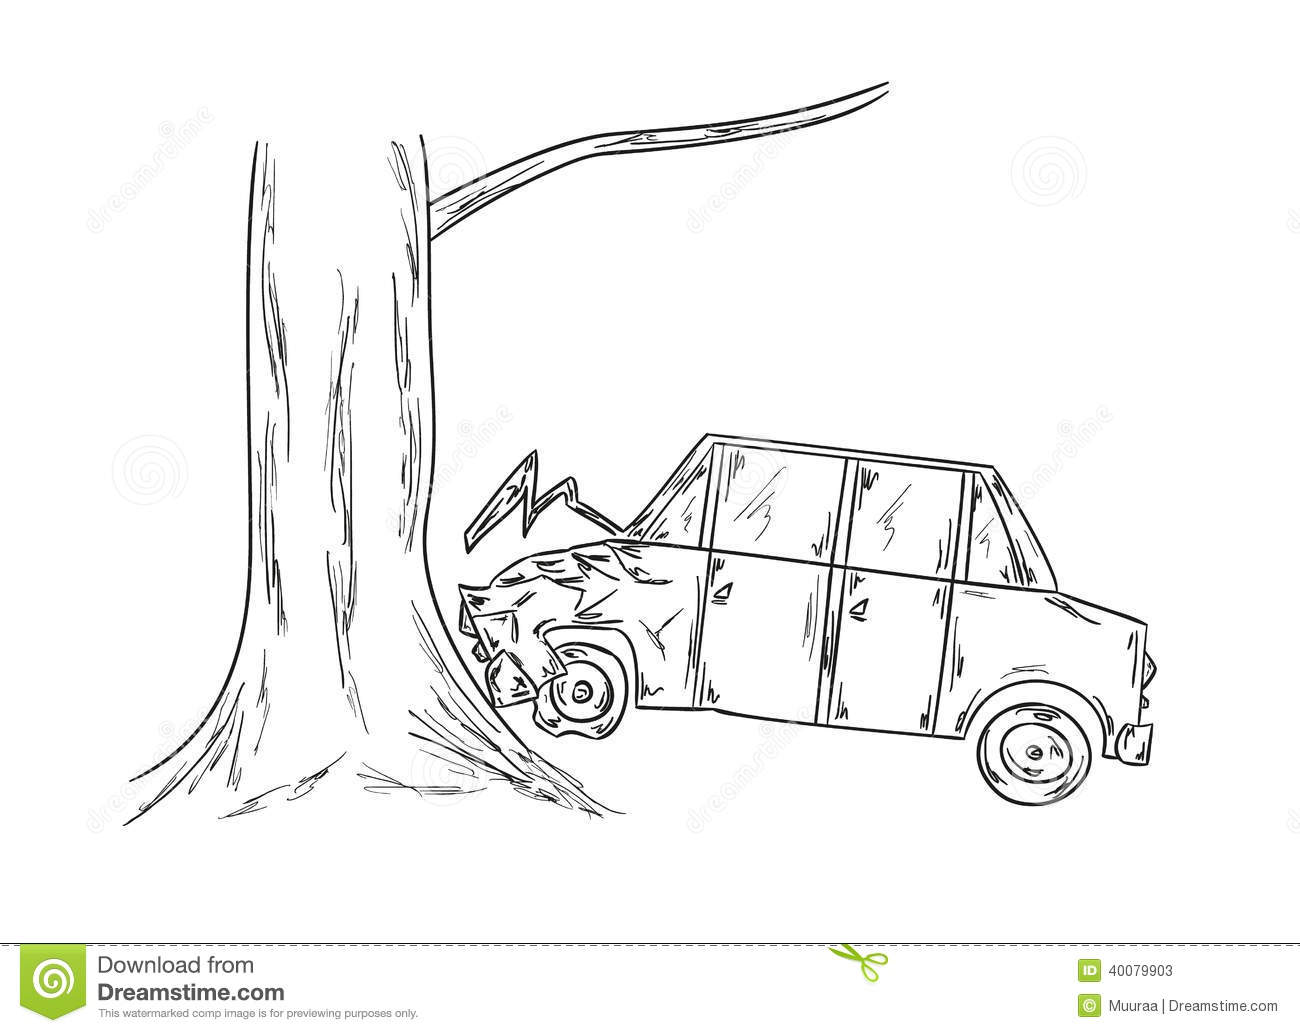 Car accident sketch stock vector. Illustration of danger - 40079903